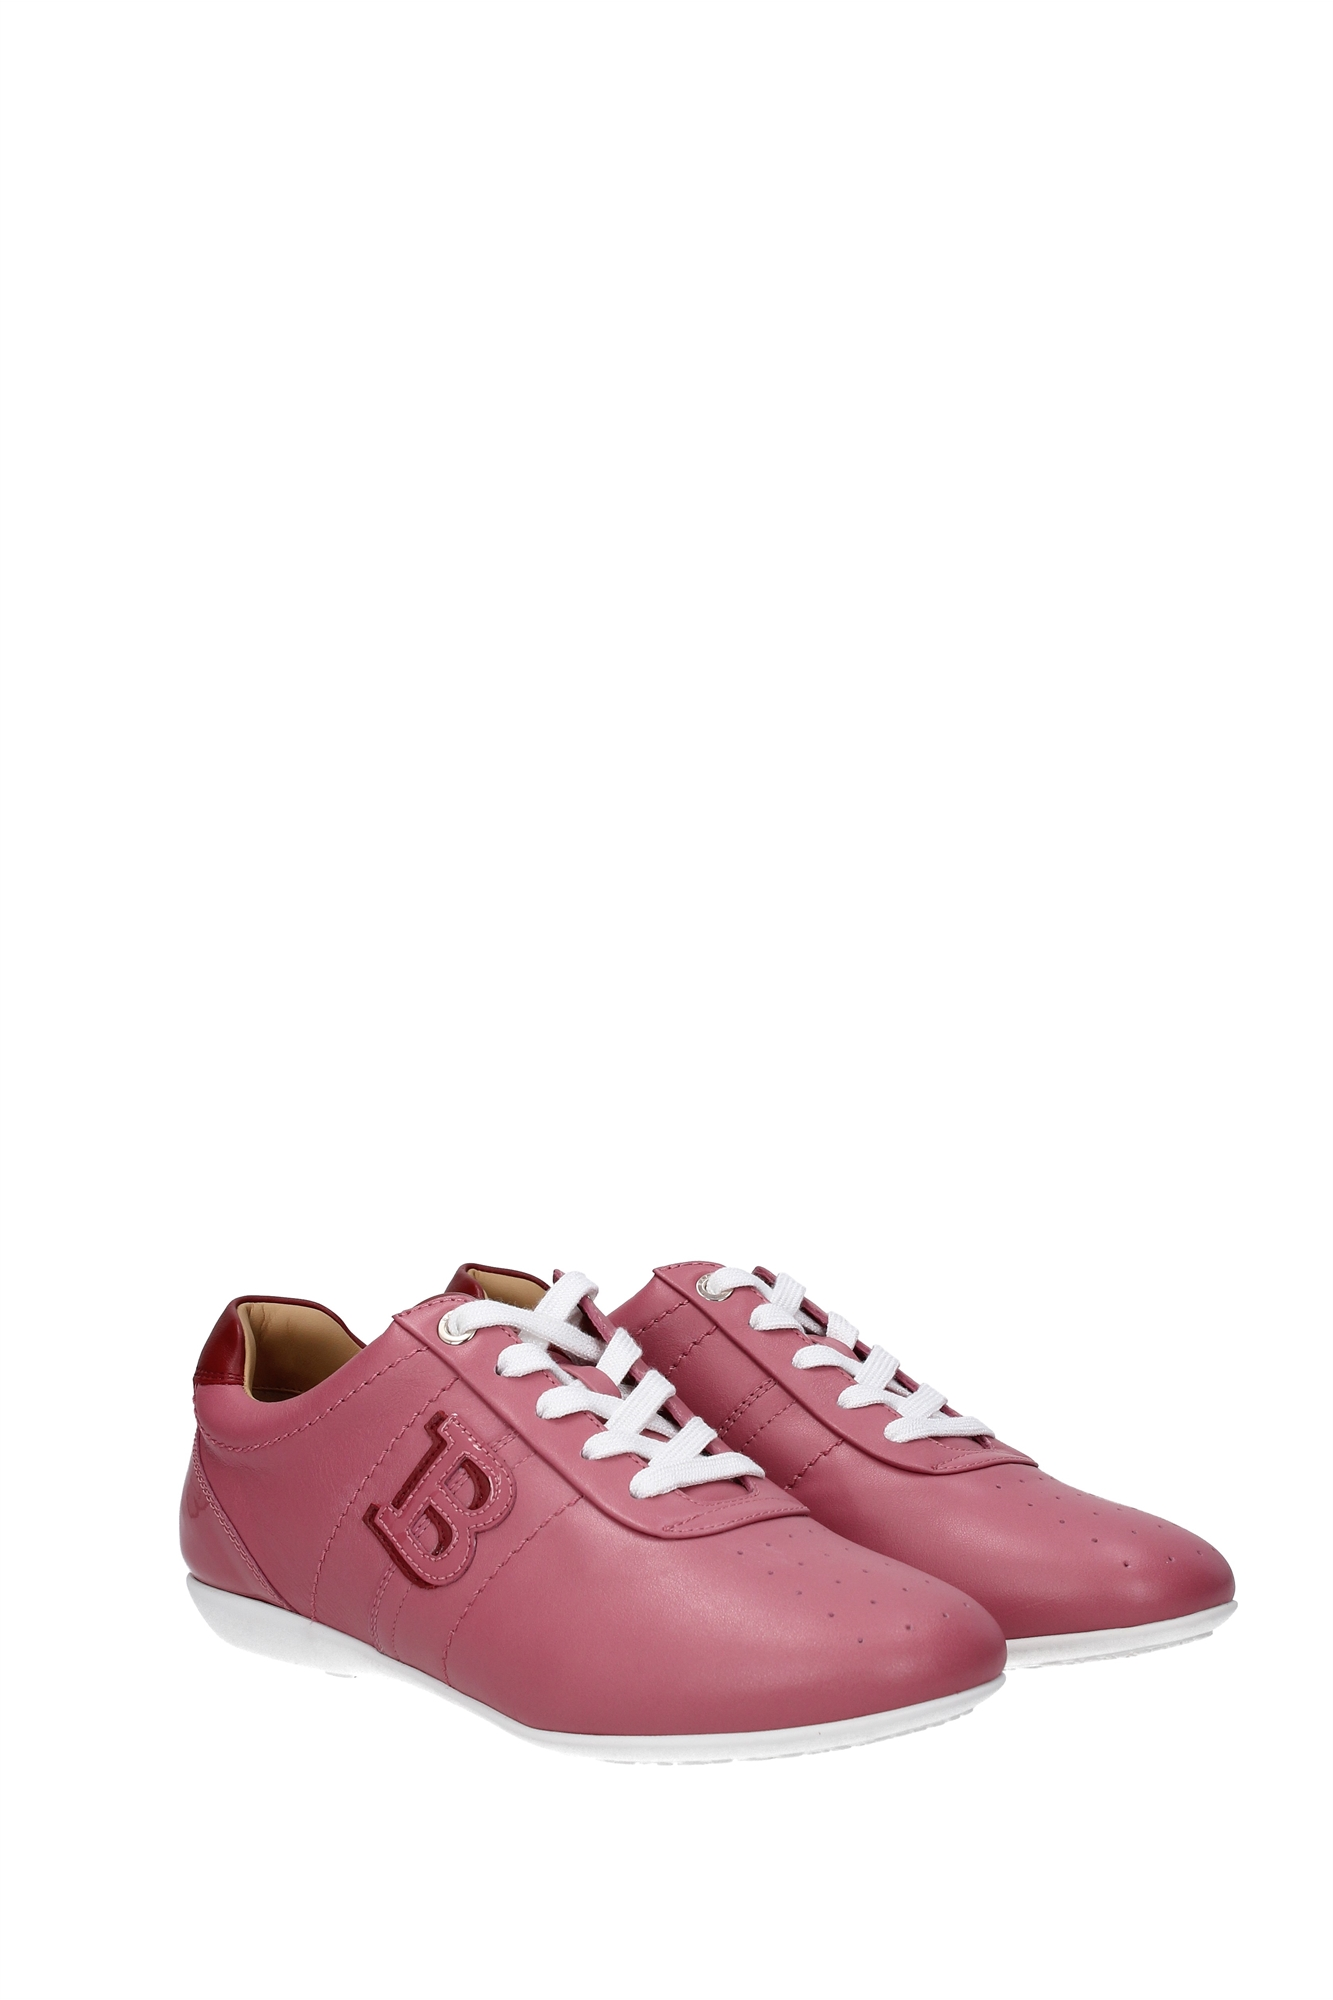 sneakers bally leather pink heike106202577 ebay